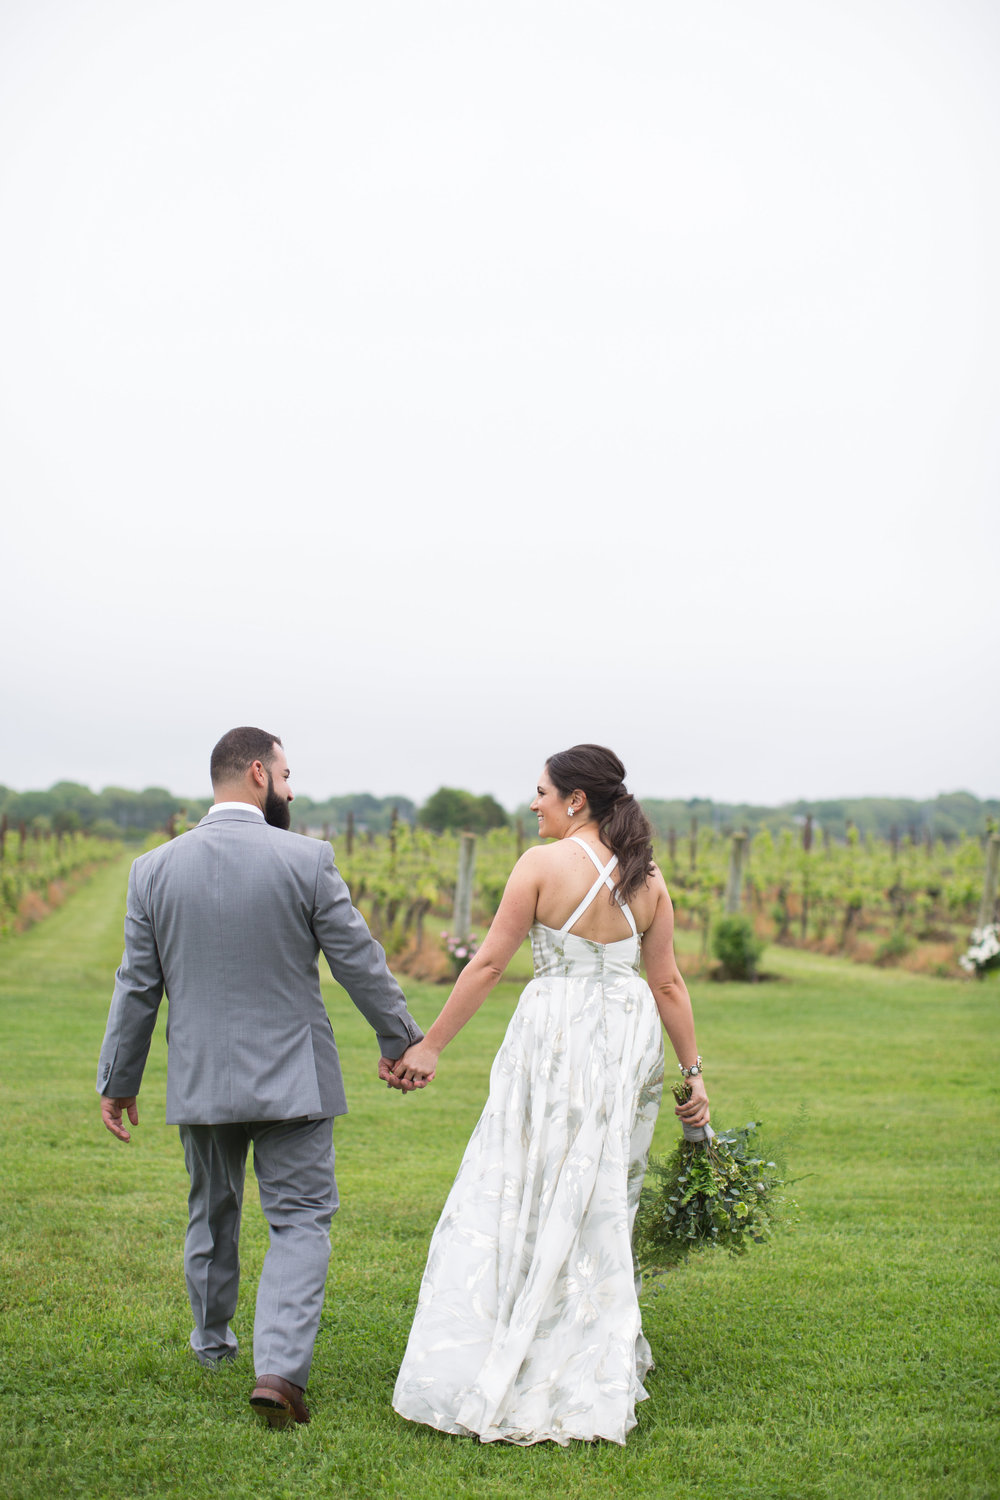 Nicole & Mike, June 1, 2018